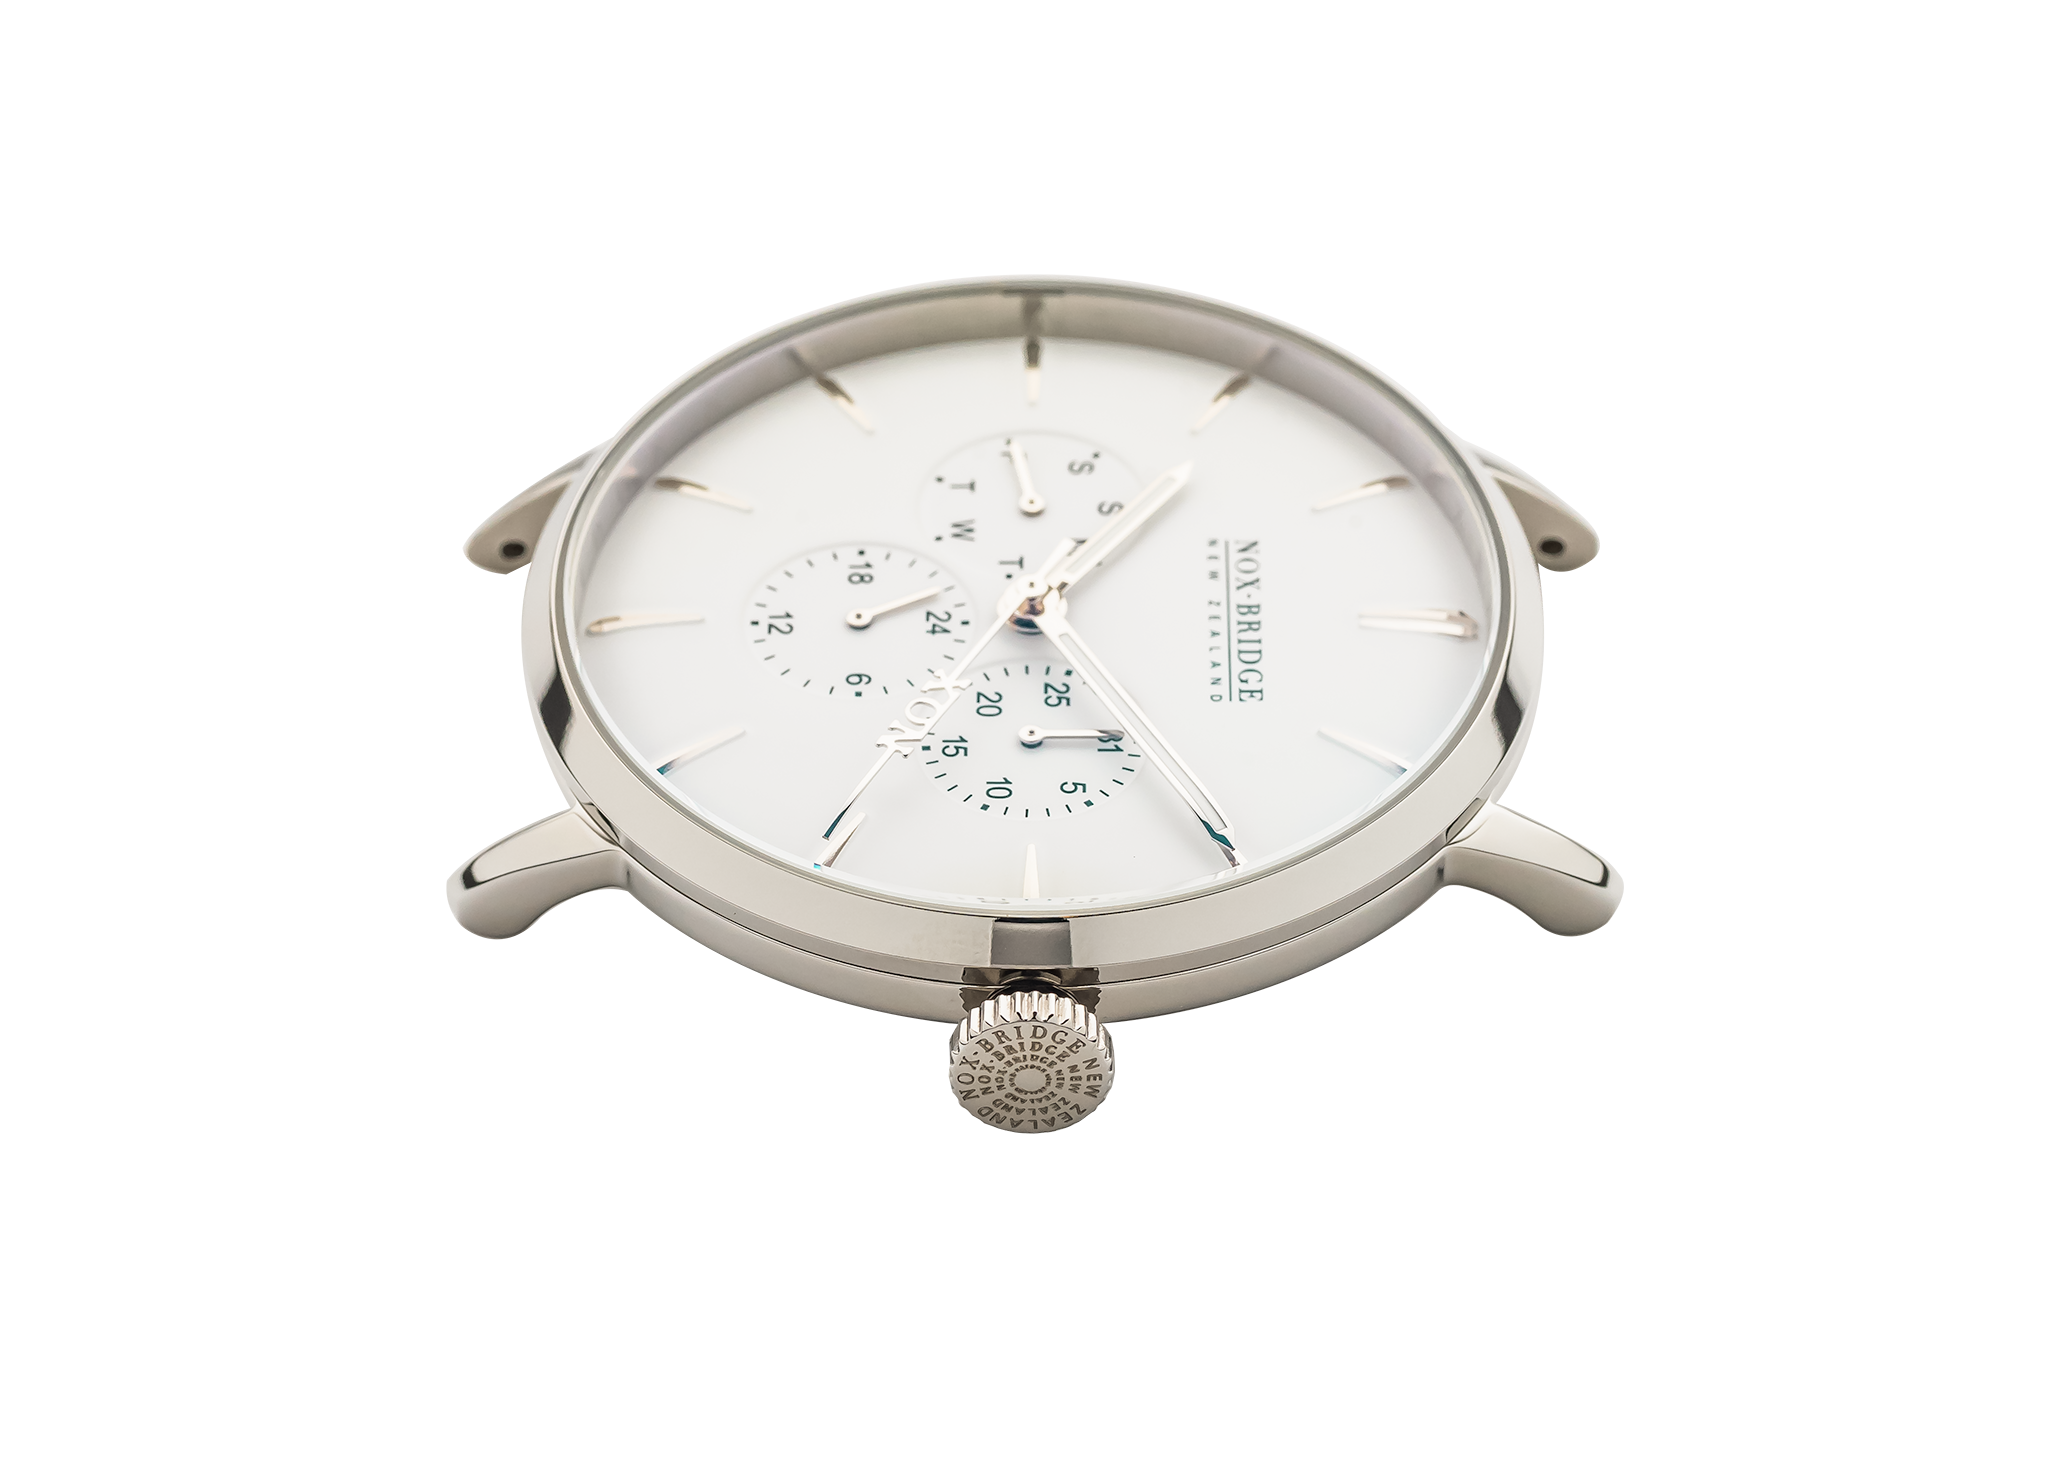 NOX-BRIDGE Classic Meissa Vegan White Leather Strap White Dial 36MM Silver Watch